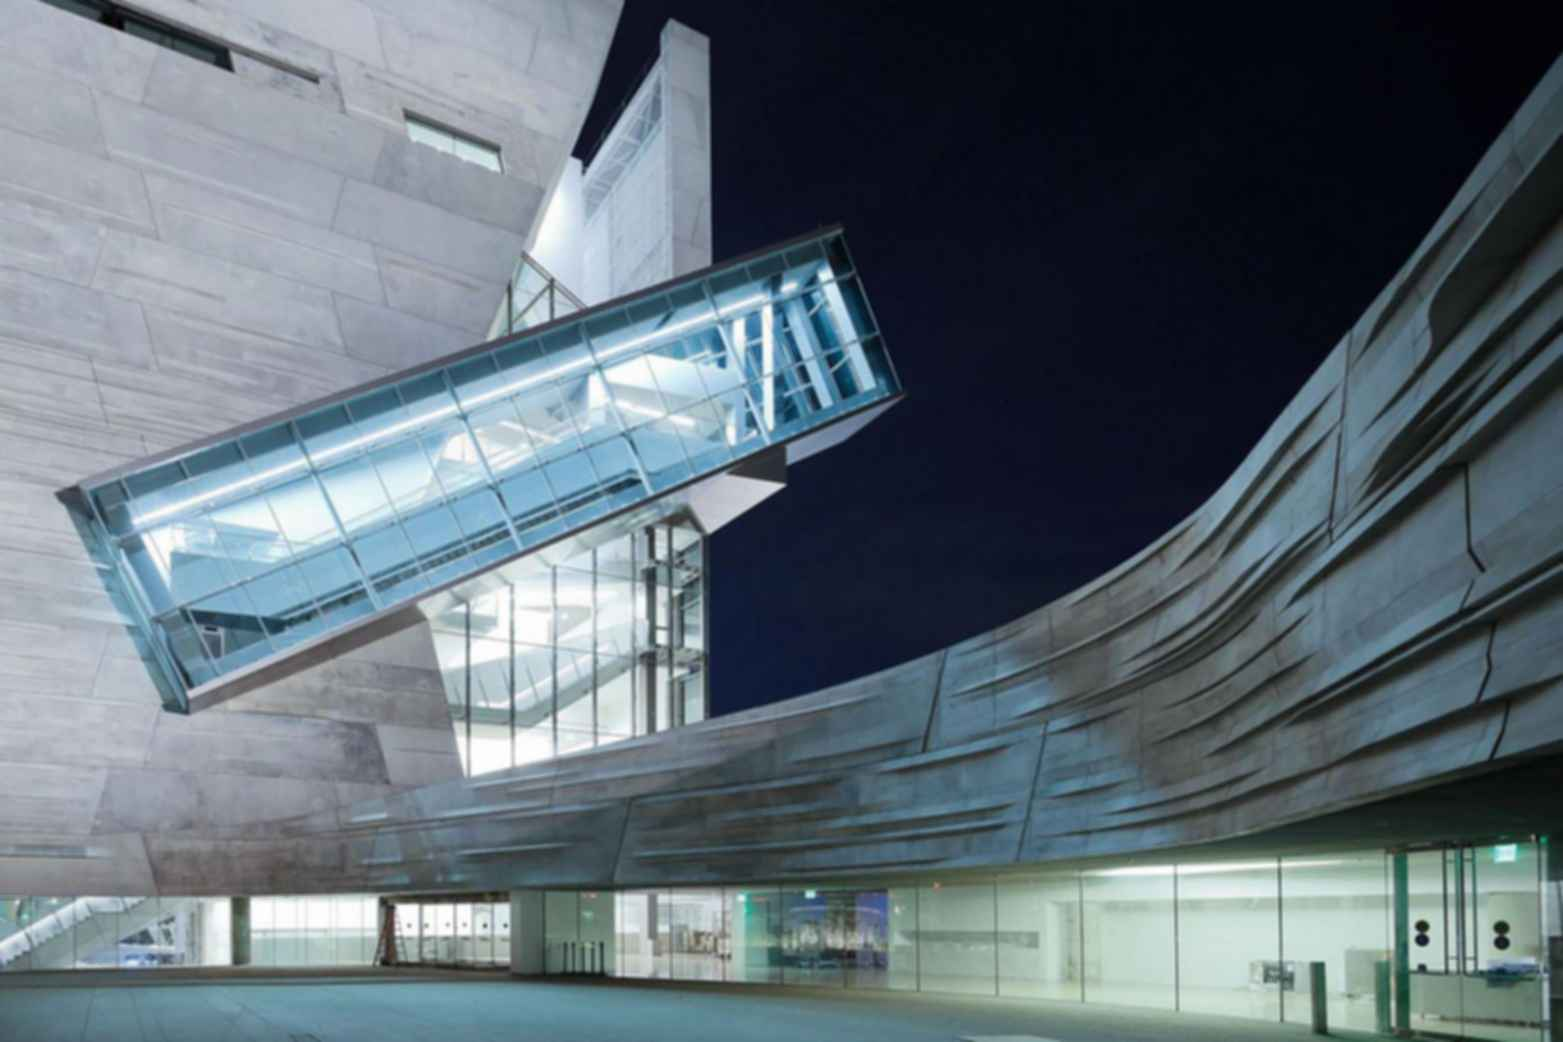 Perot Museum of Nature and Science - Exterior/Entrance